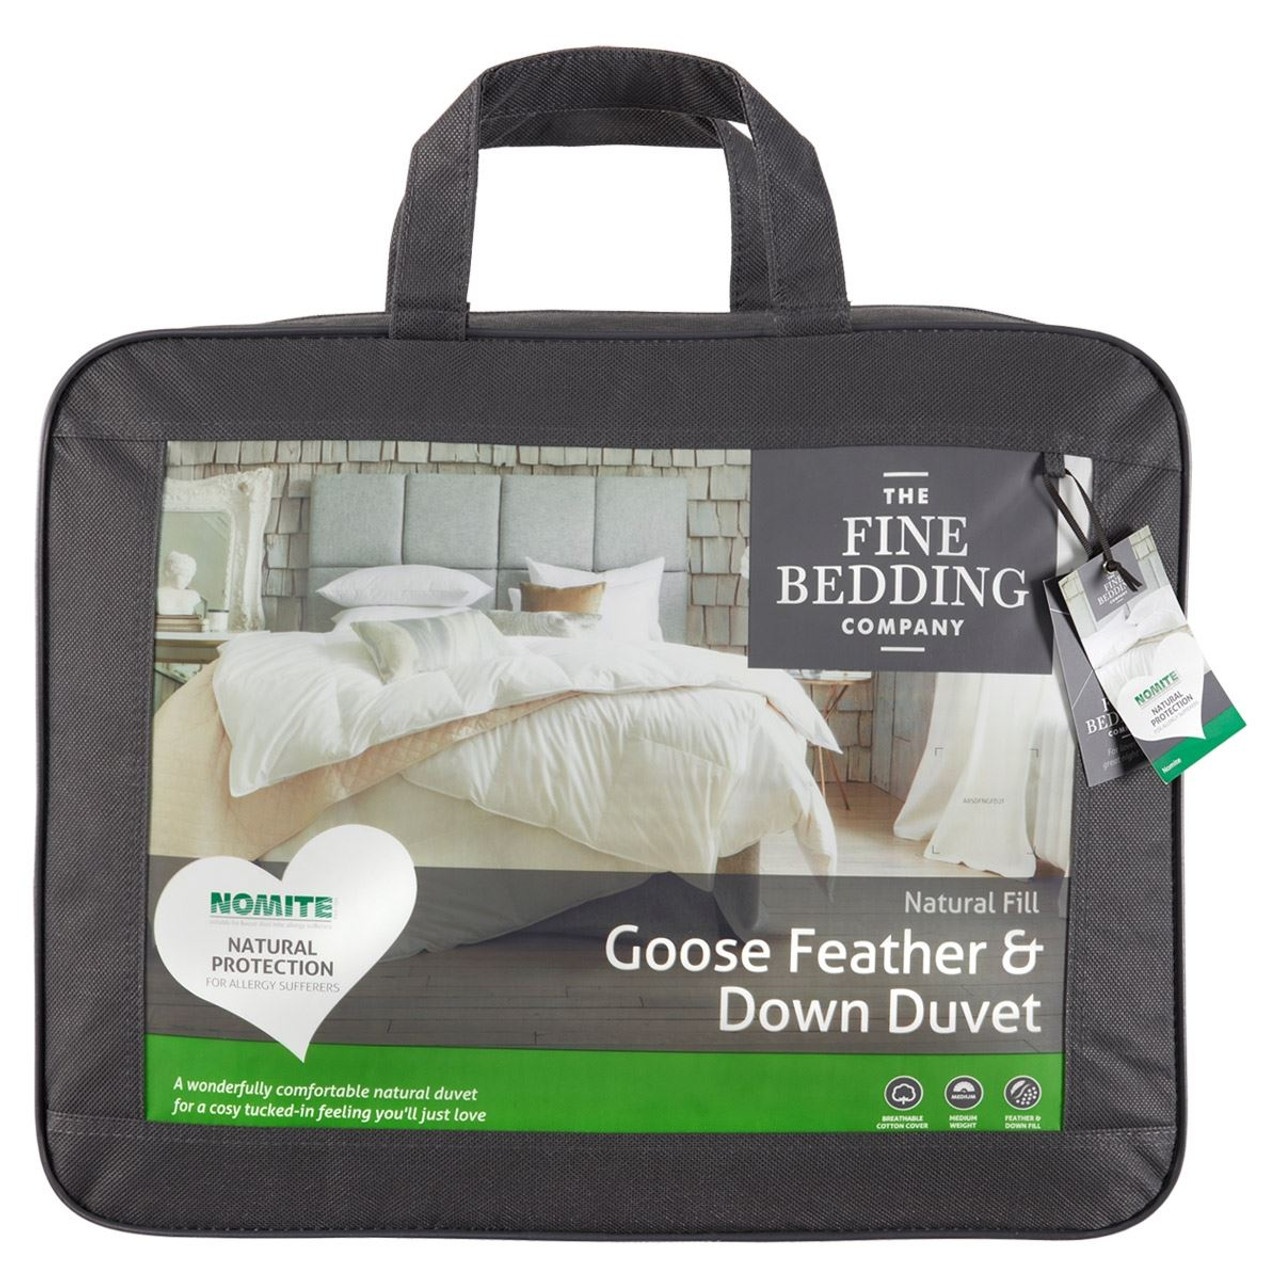 The Fine Bedding Company Goose Feather & Down Duvet